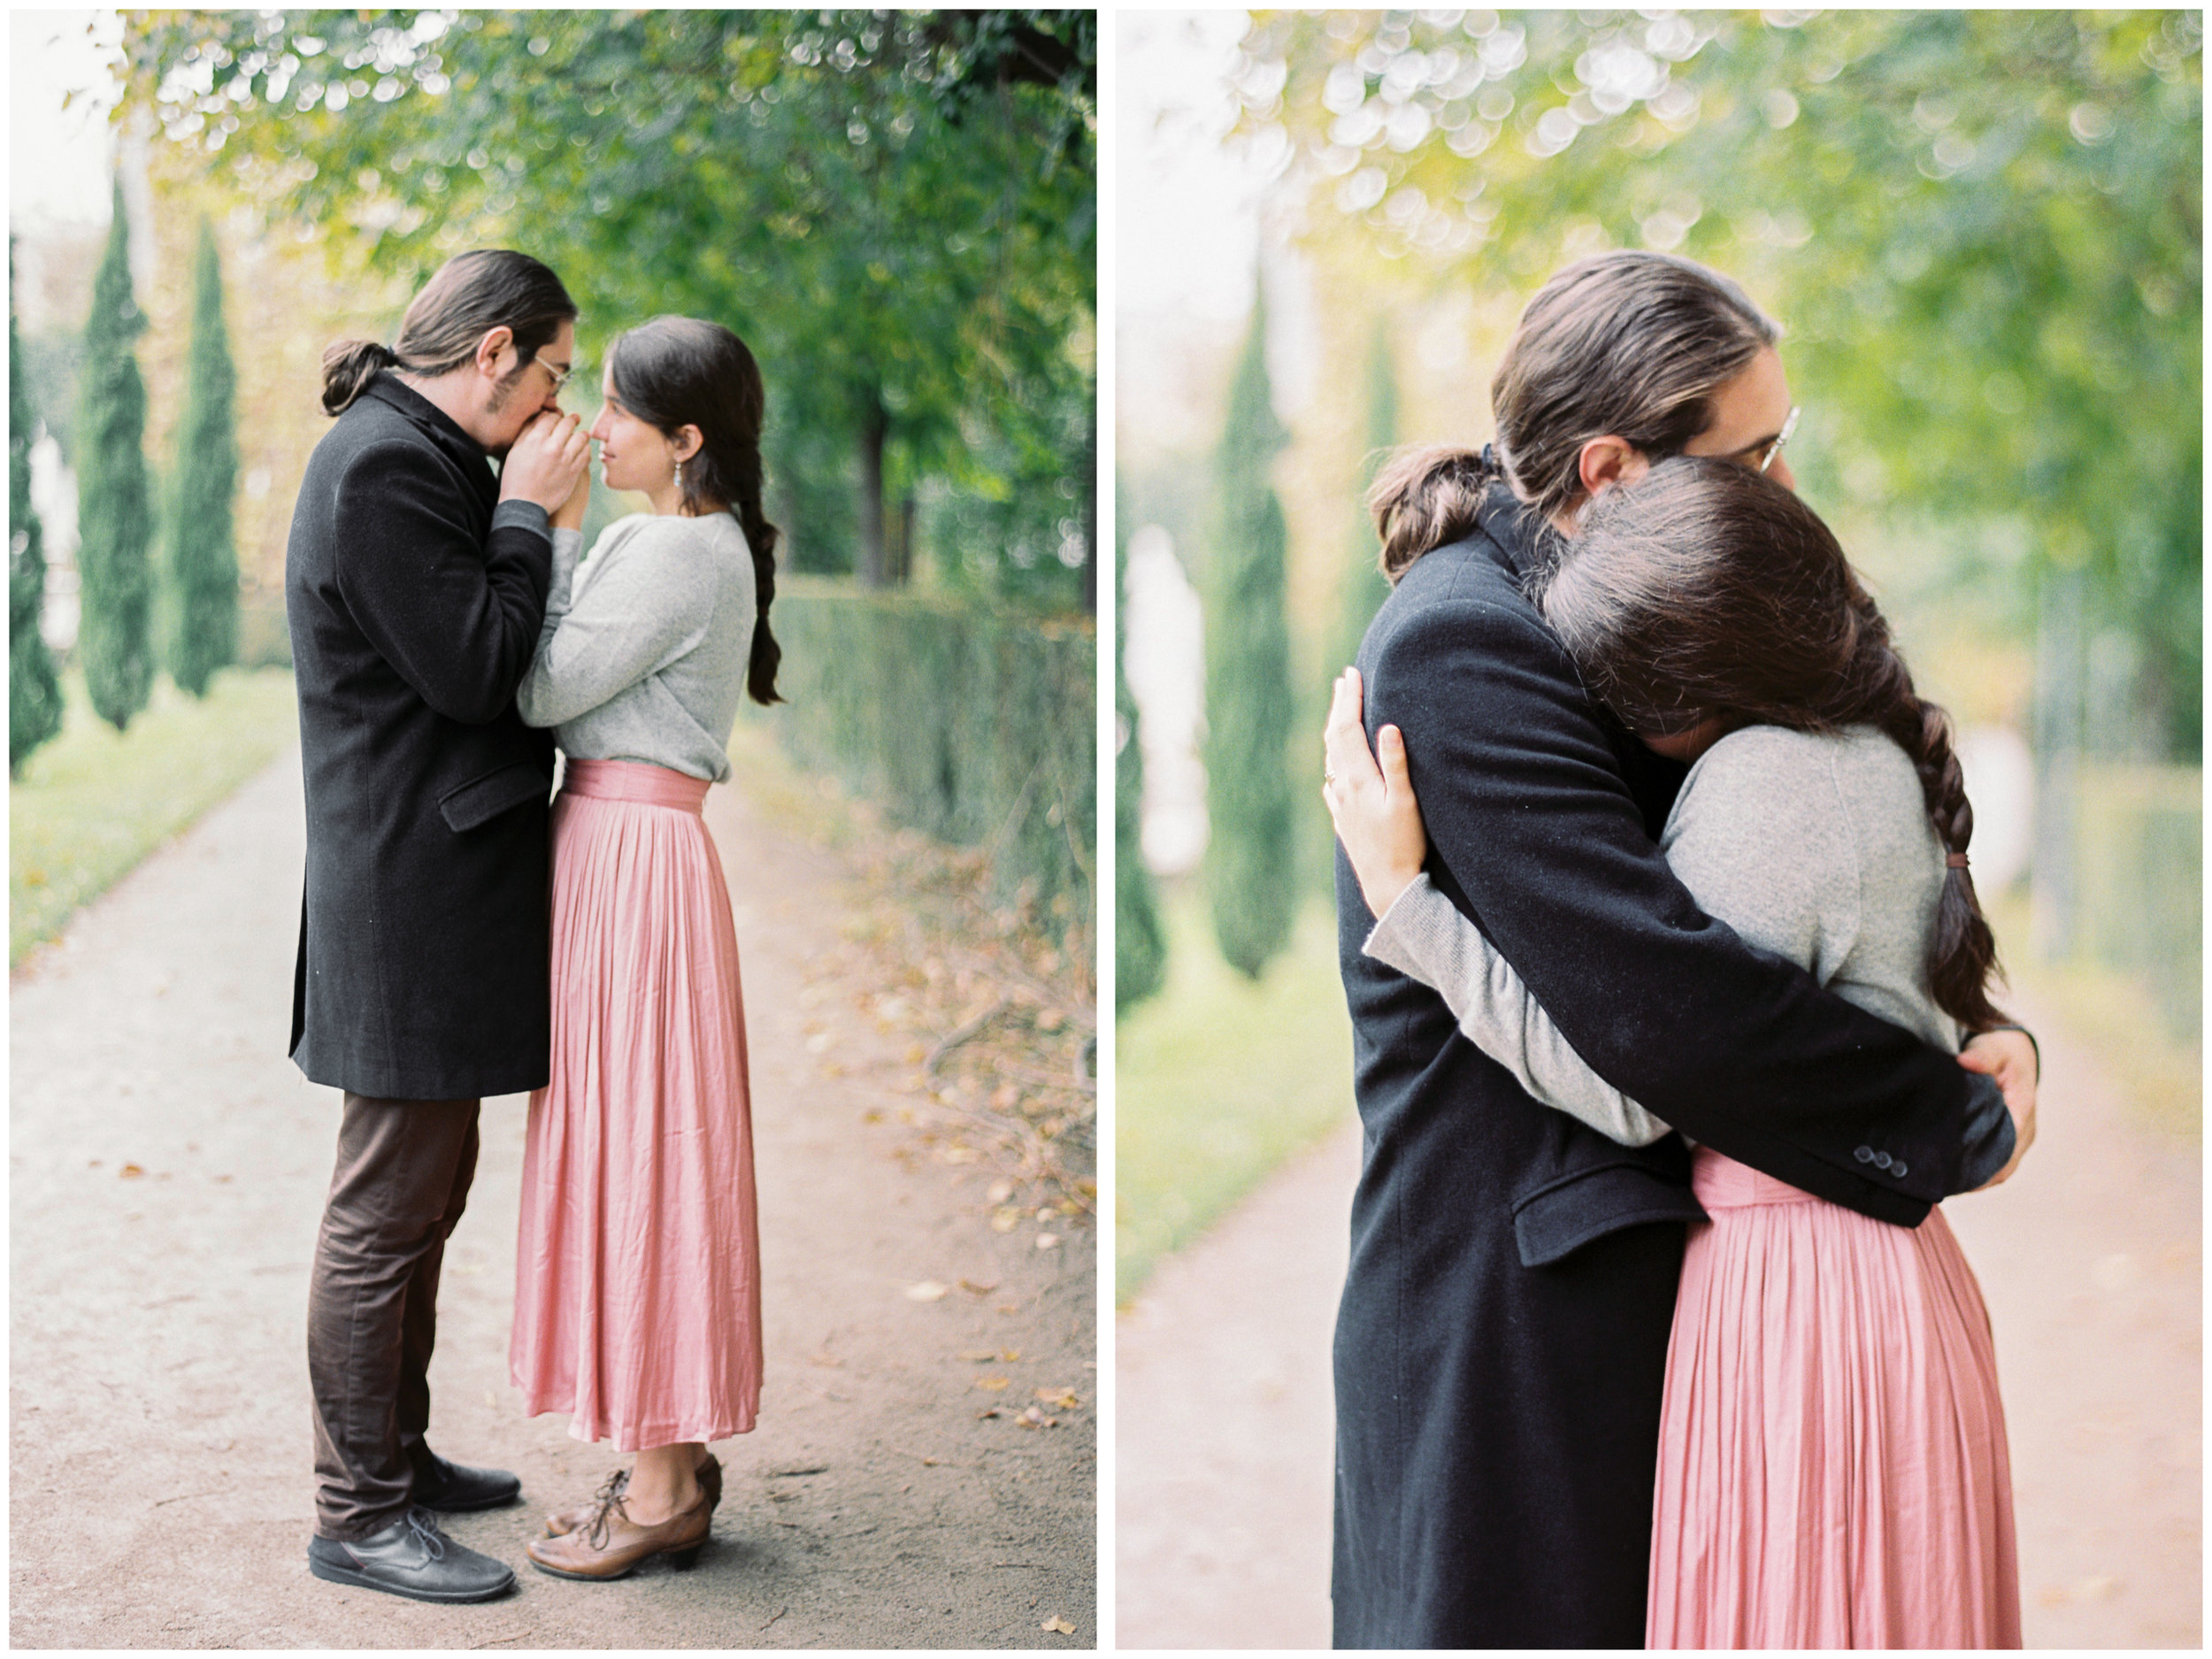 Couple in Love | Vienna, Austria | Fuji400H | Contax645 | Vienna Film Photographer | Michelle Mock Photography